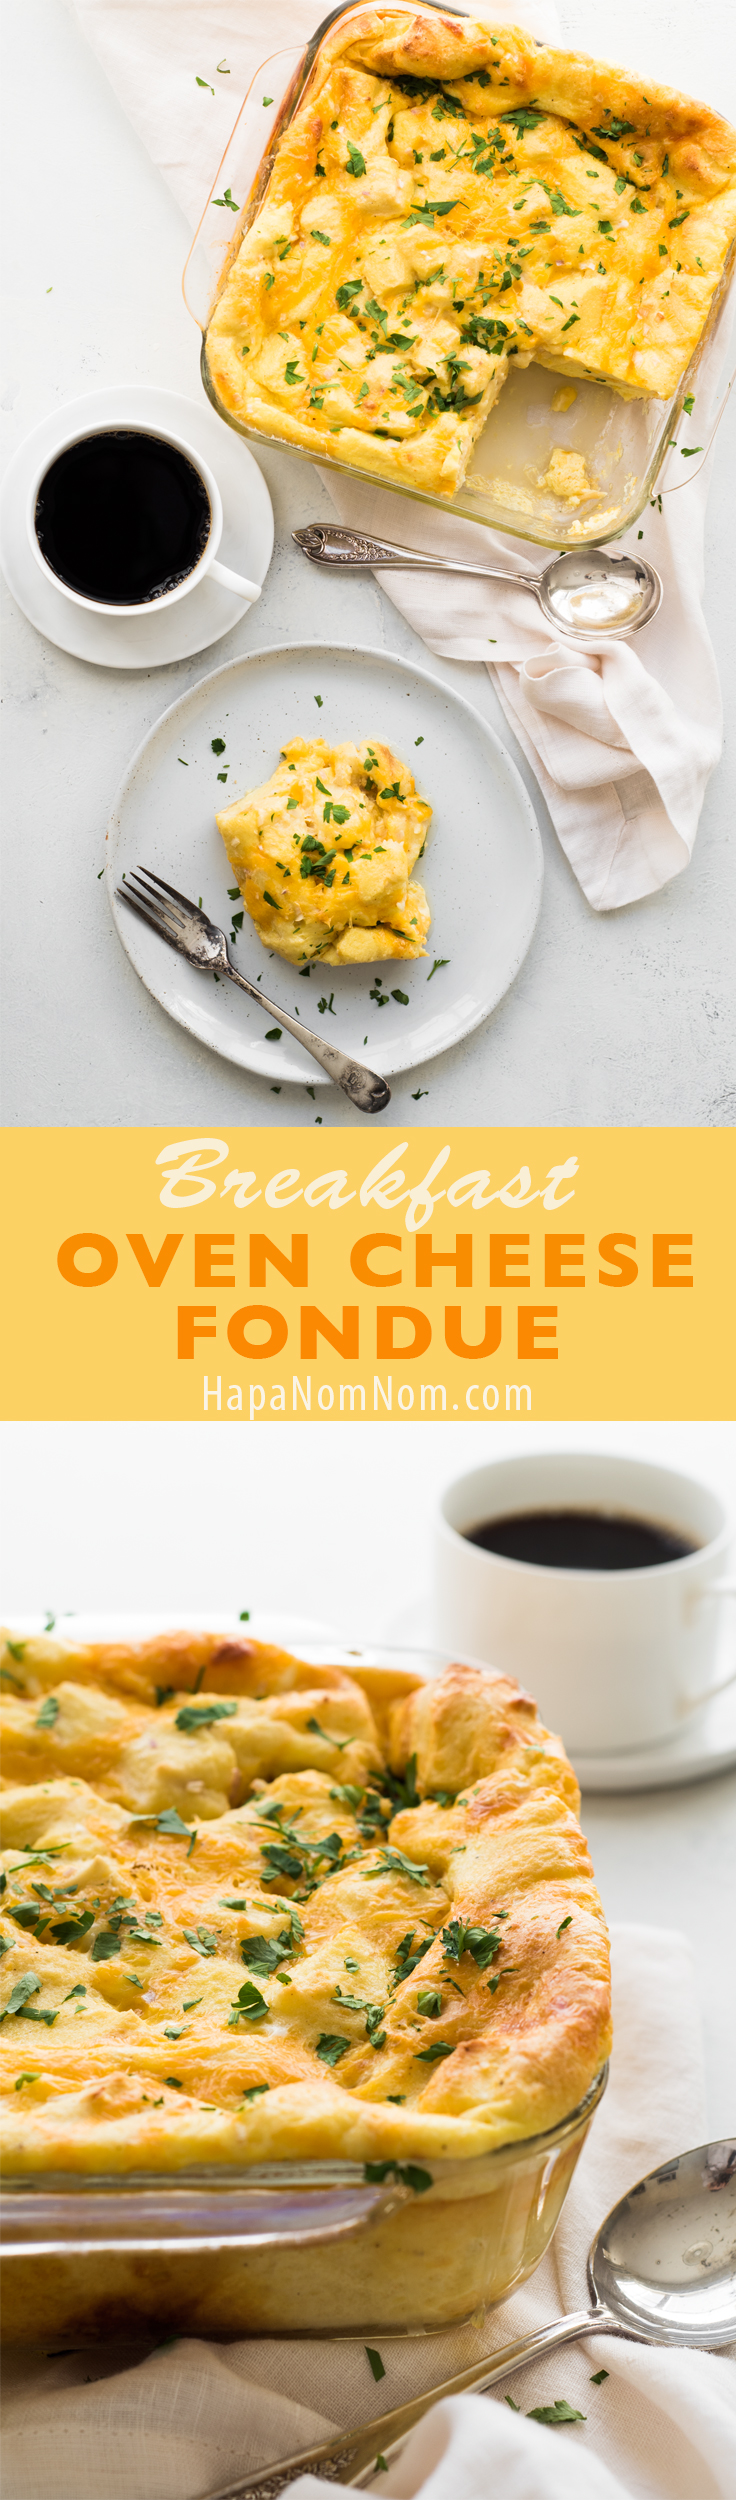 Easy to make, this Christmas Breakfast Oven Cheese Fondue can be made the night before and baked while you're opening gifts.